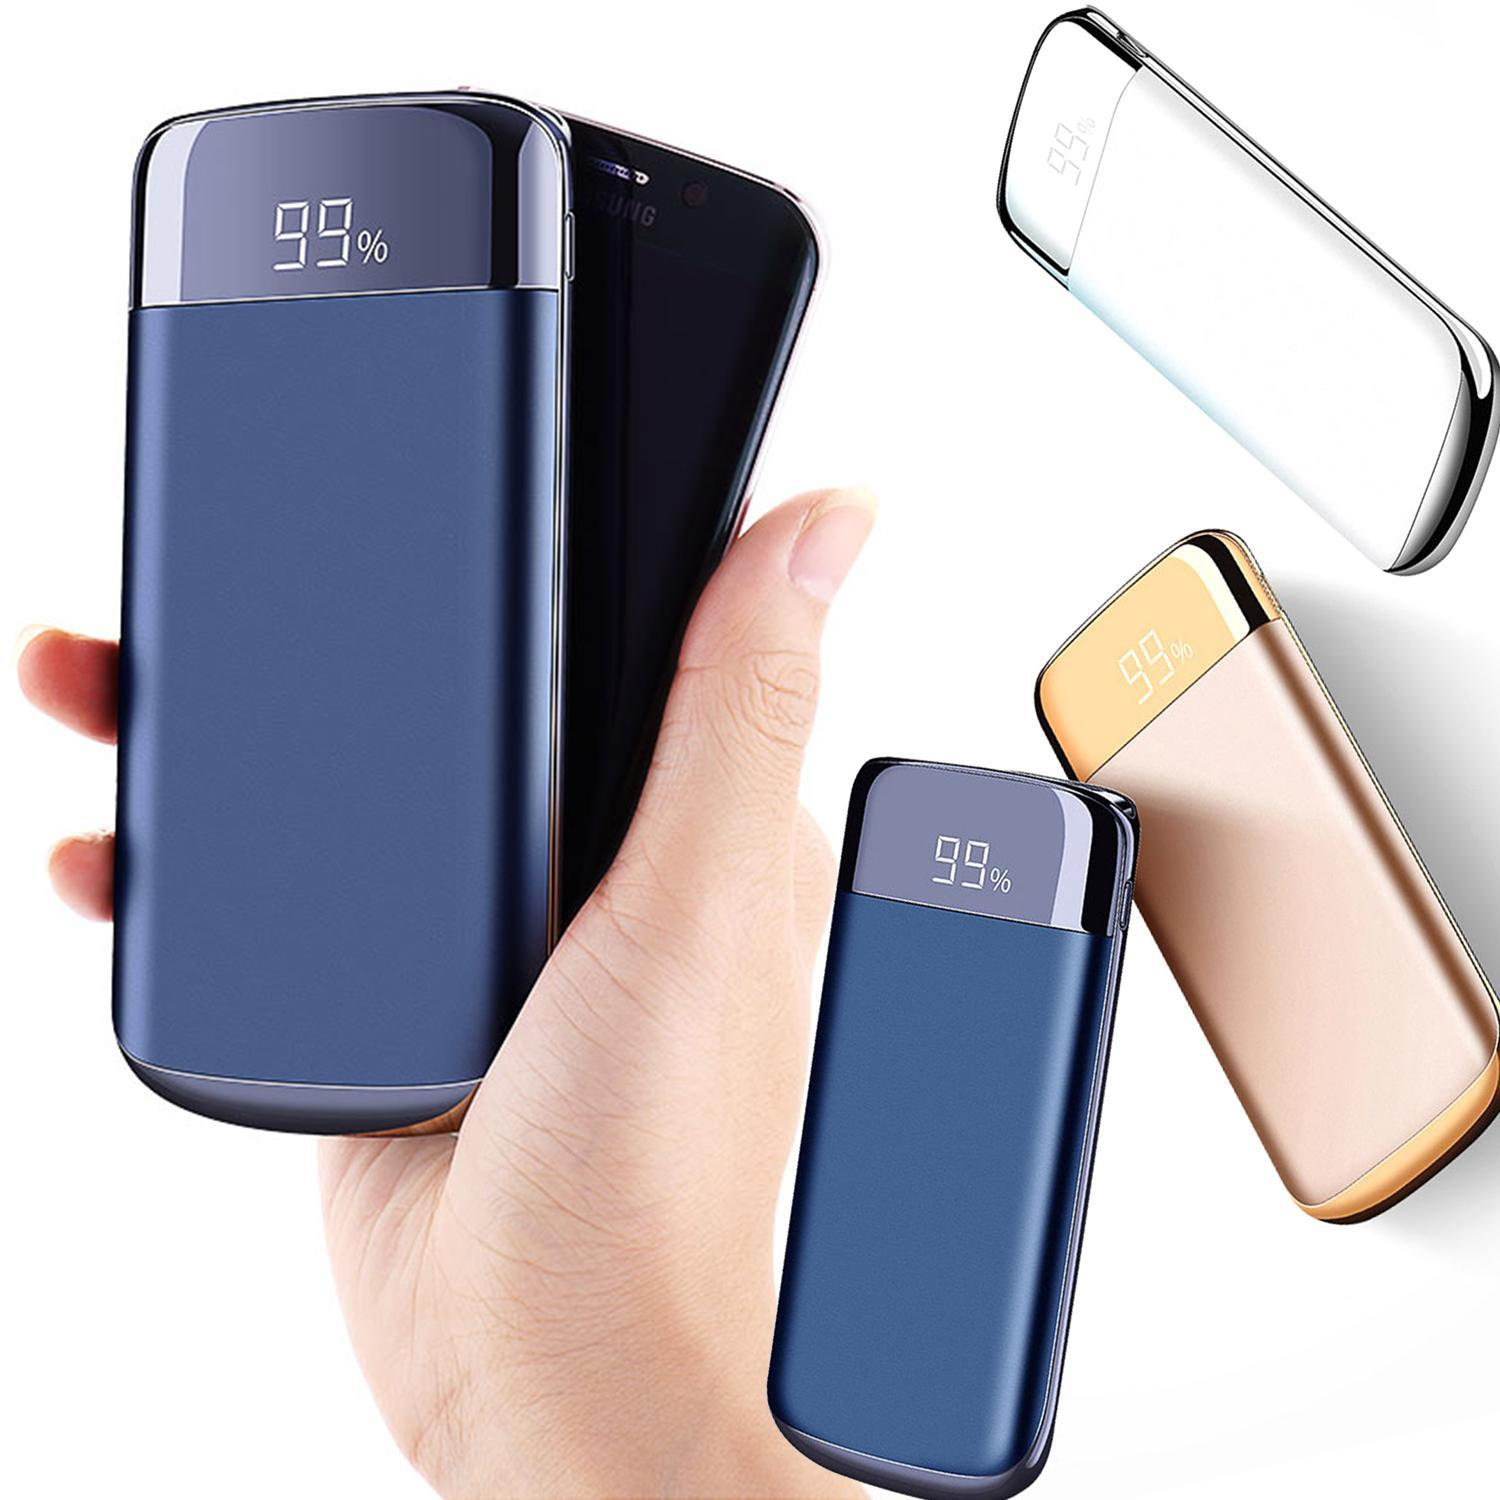 961ae8d8b74bd7 20000mAh Power Bank Fast charge Original Dual USB Mobile phone External  Portable Charger Powerbank 18650 Battery for all phone